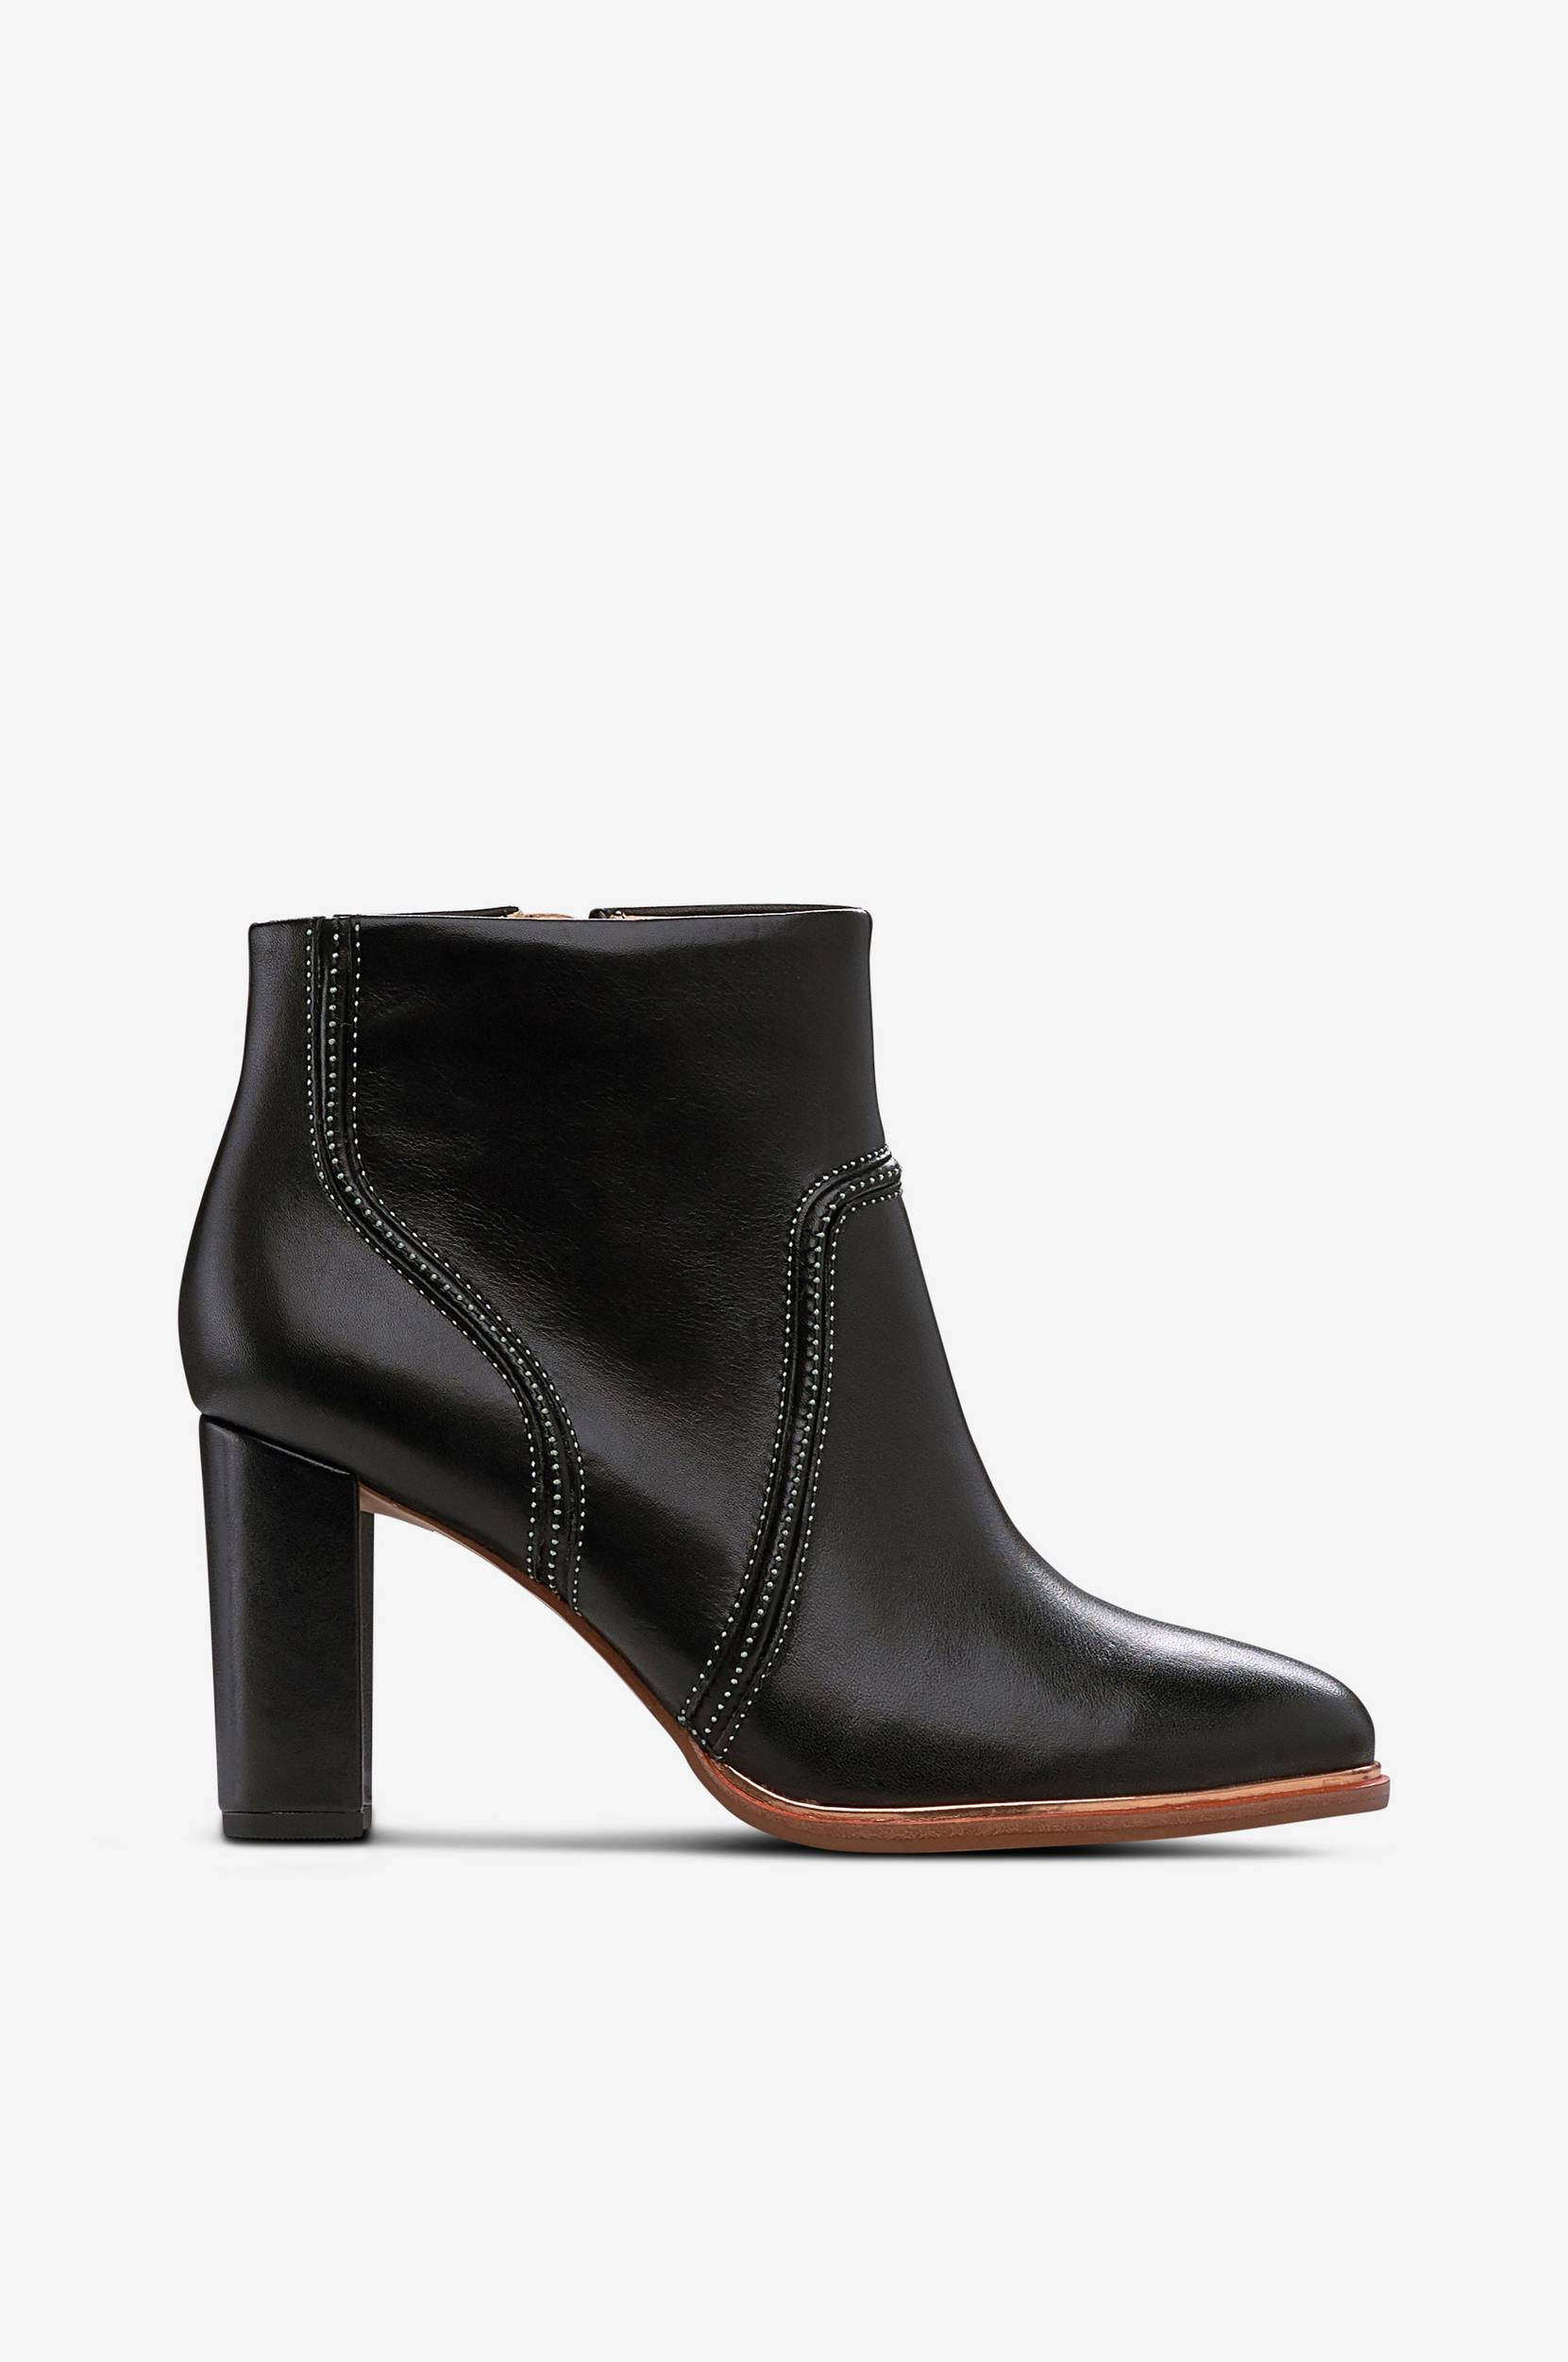 Ellis Betty -nilkkurit